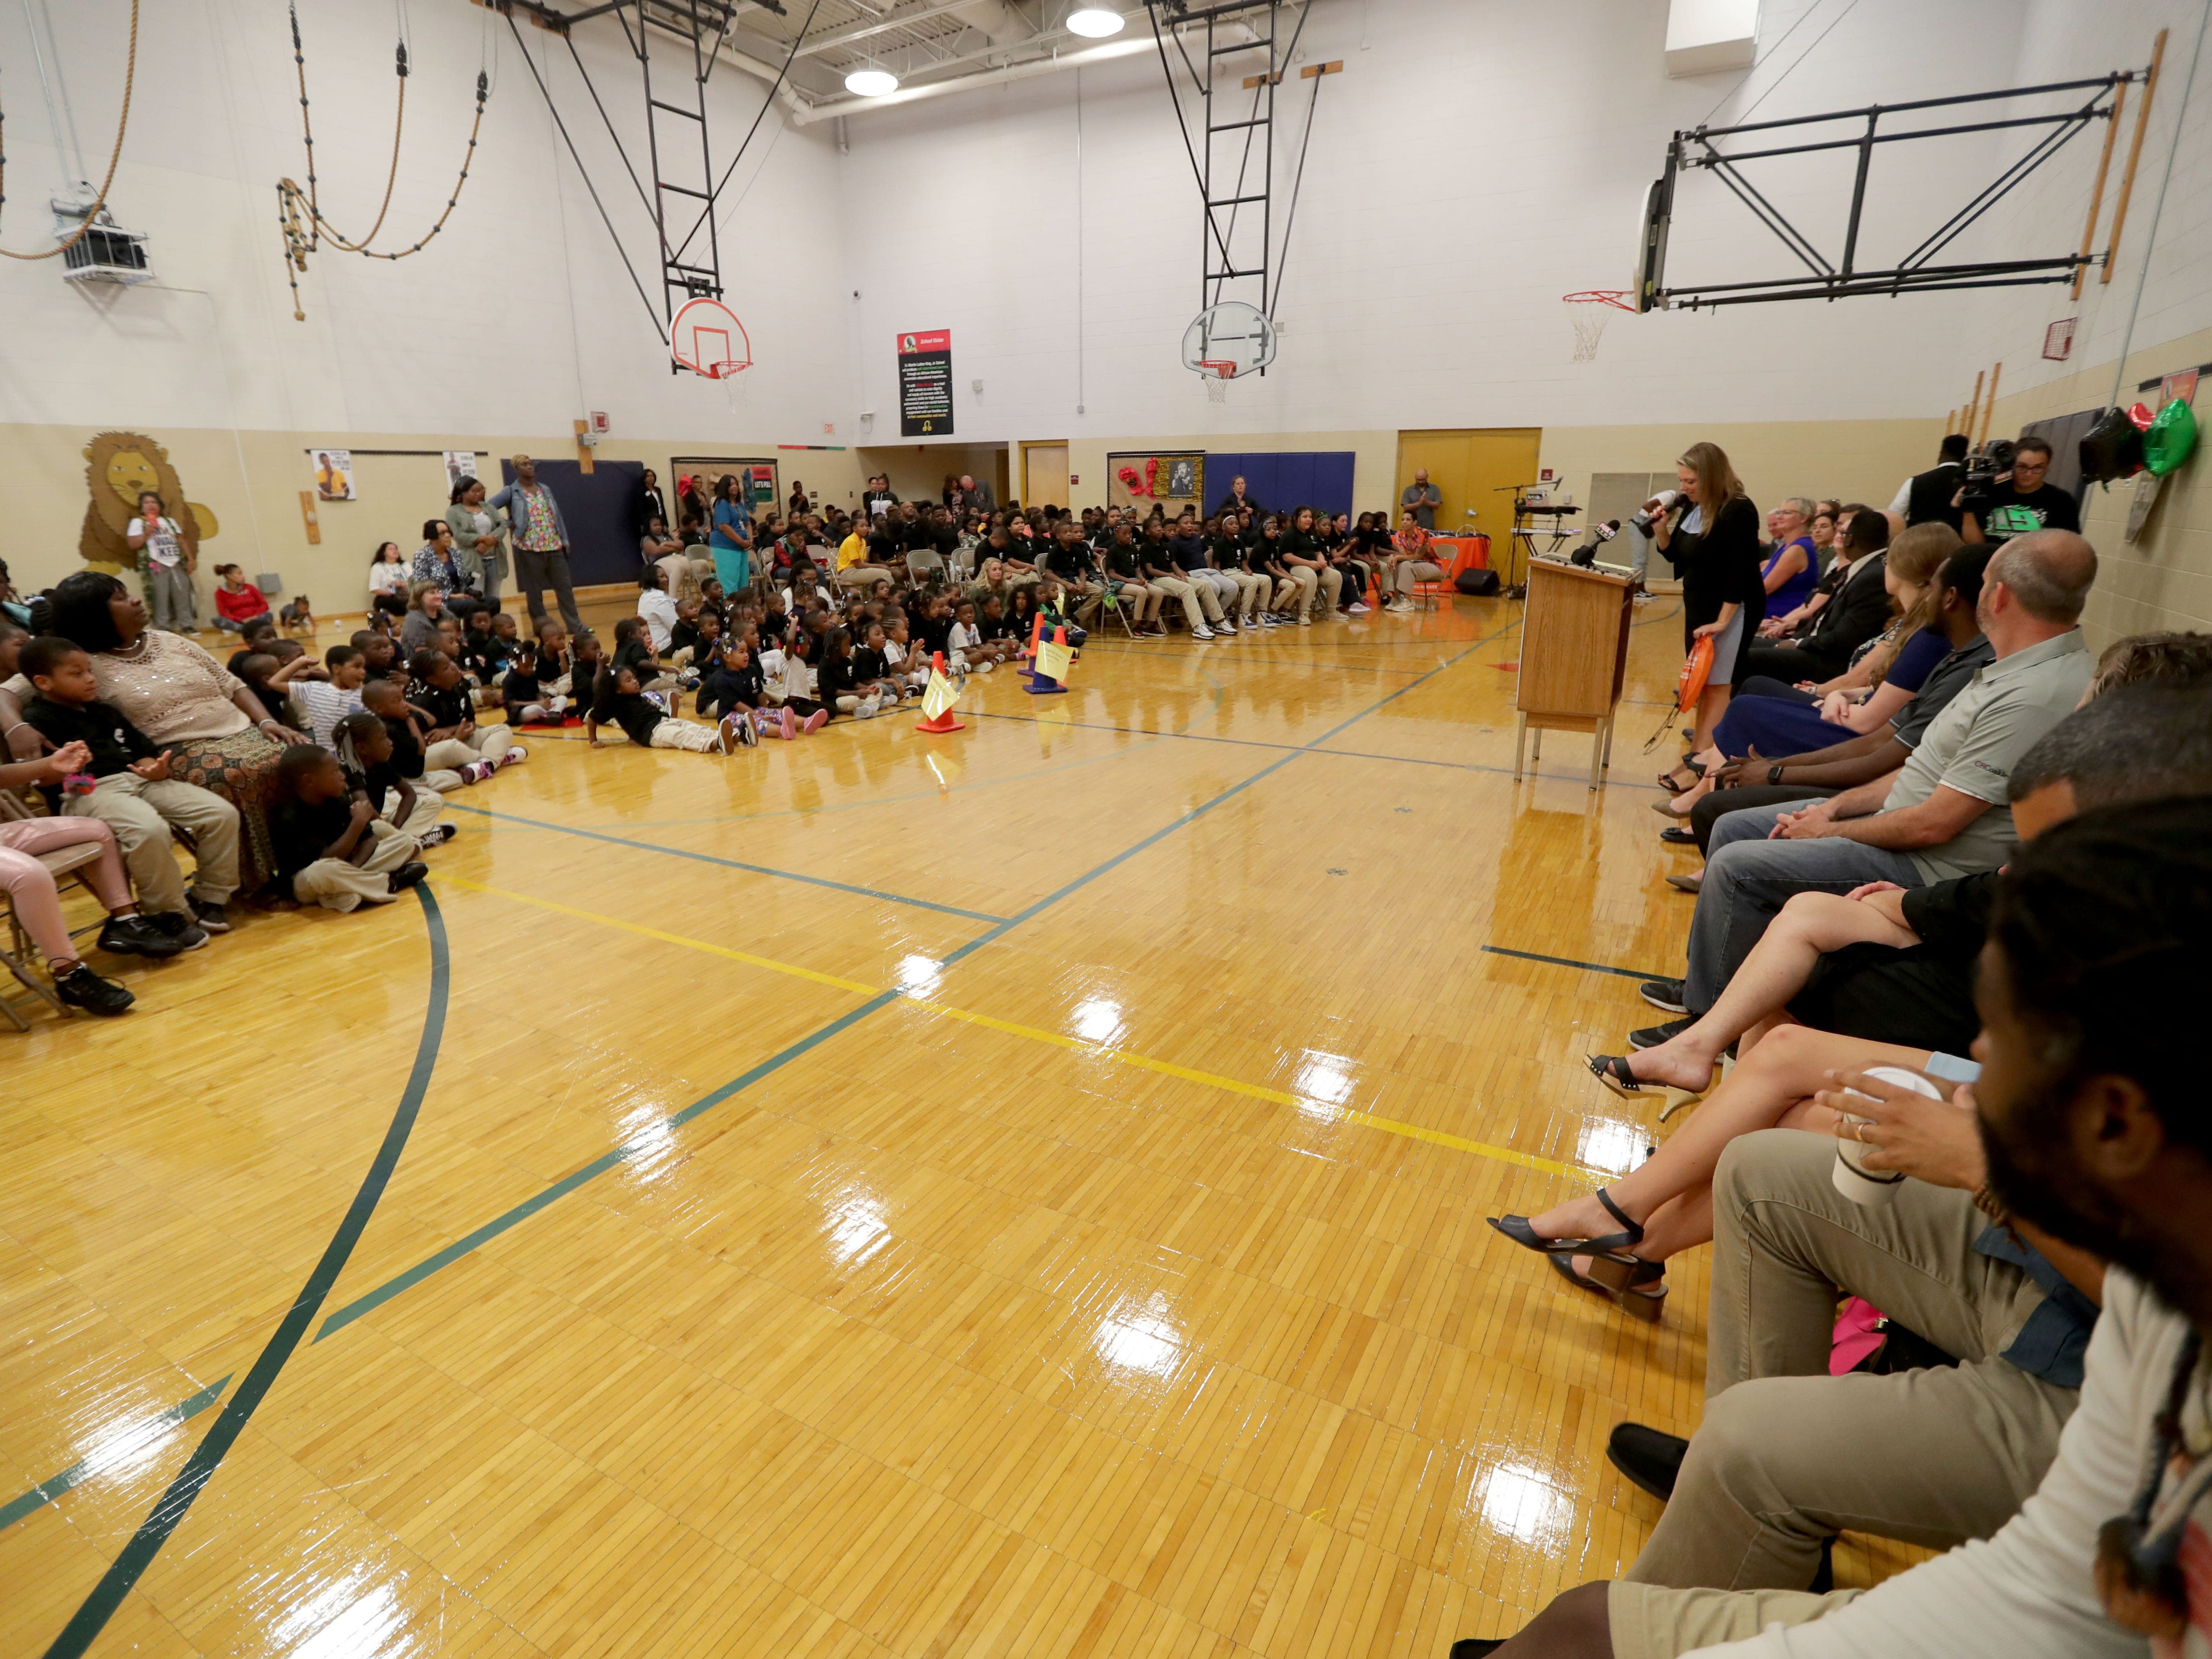 Students, teachers, staff and others attend an assembly in the gym at Dr. Martin Luther King Jr. Elementary School  that was part of the third annual No Empty Backpacks School Supplies Drive. Students were getting backpacks and school supplies during the assembly.